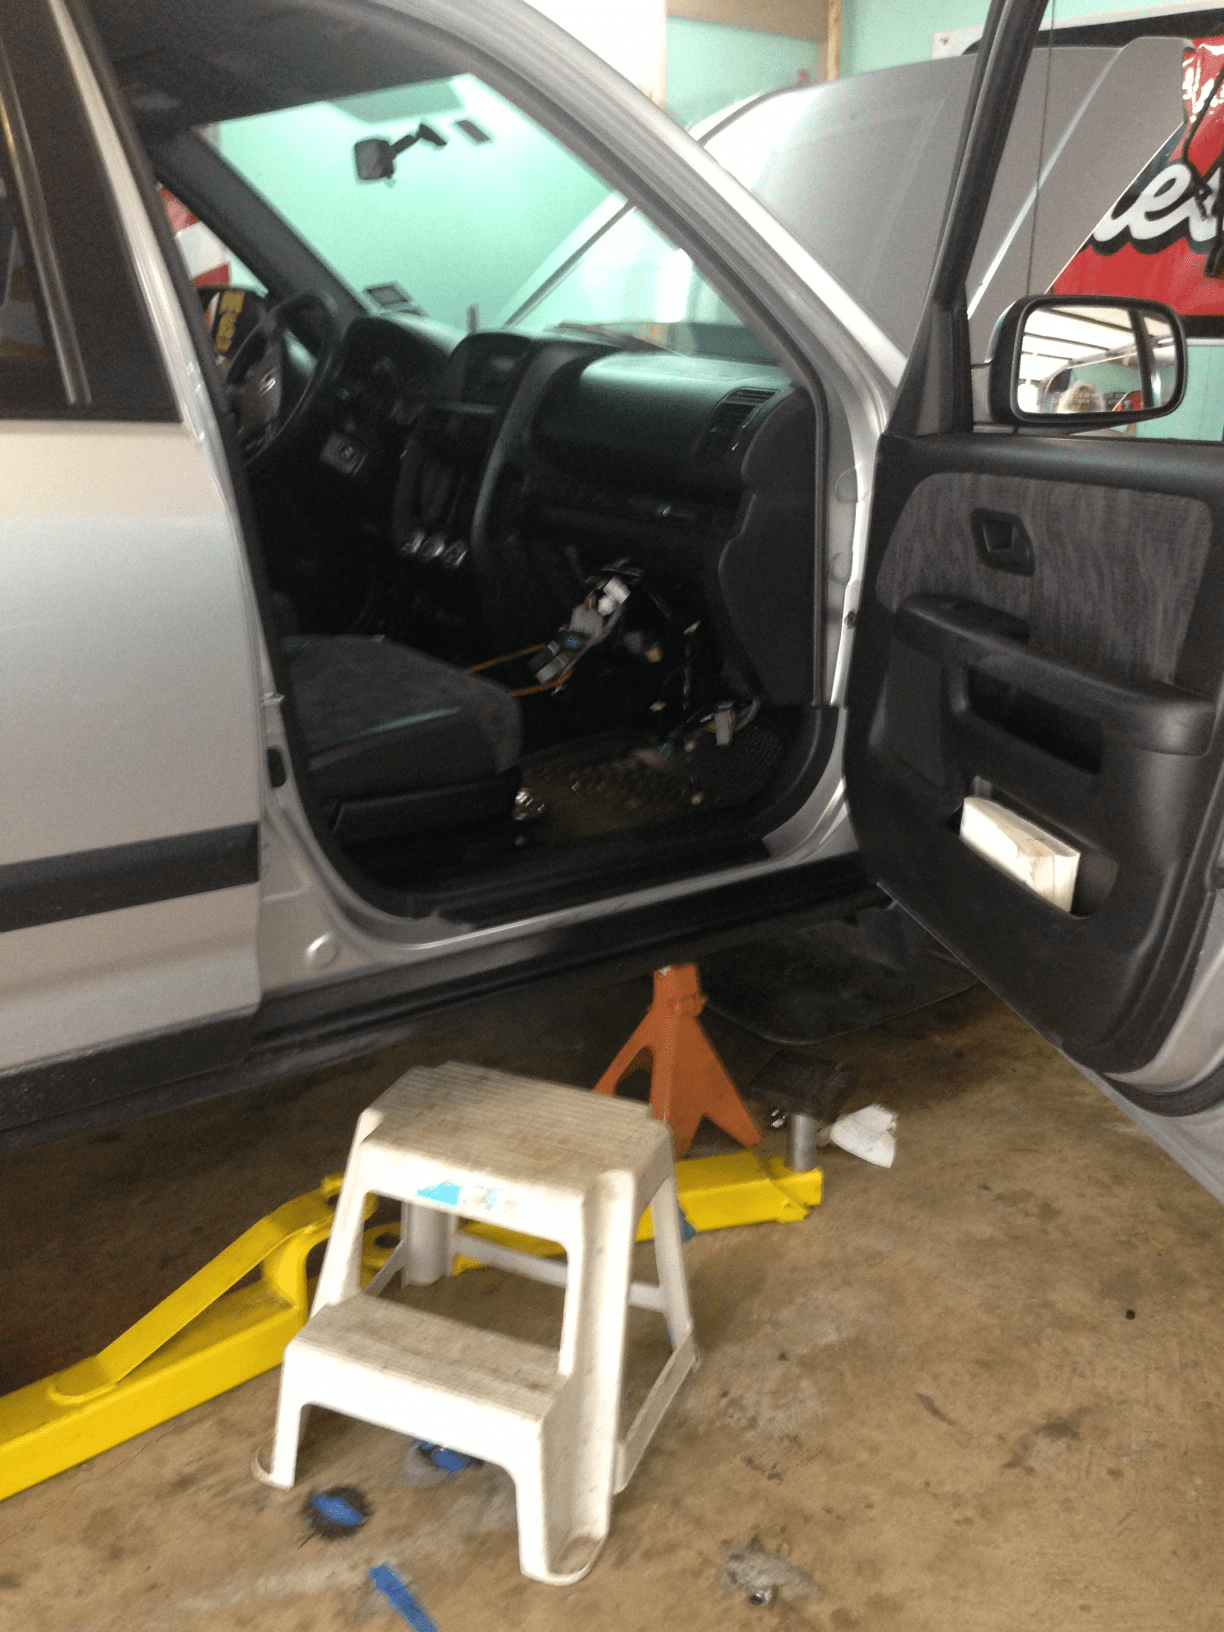 2002 Honda CRV evaporator/expansion valve installation | Classic Cars and Tools